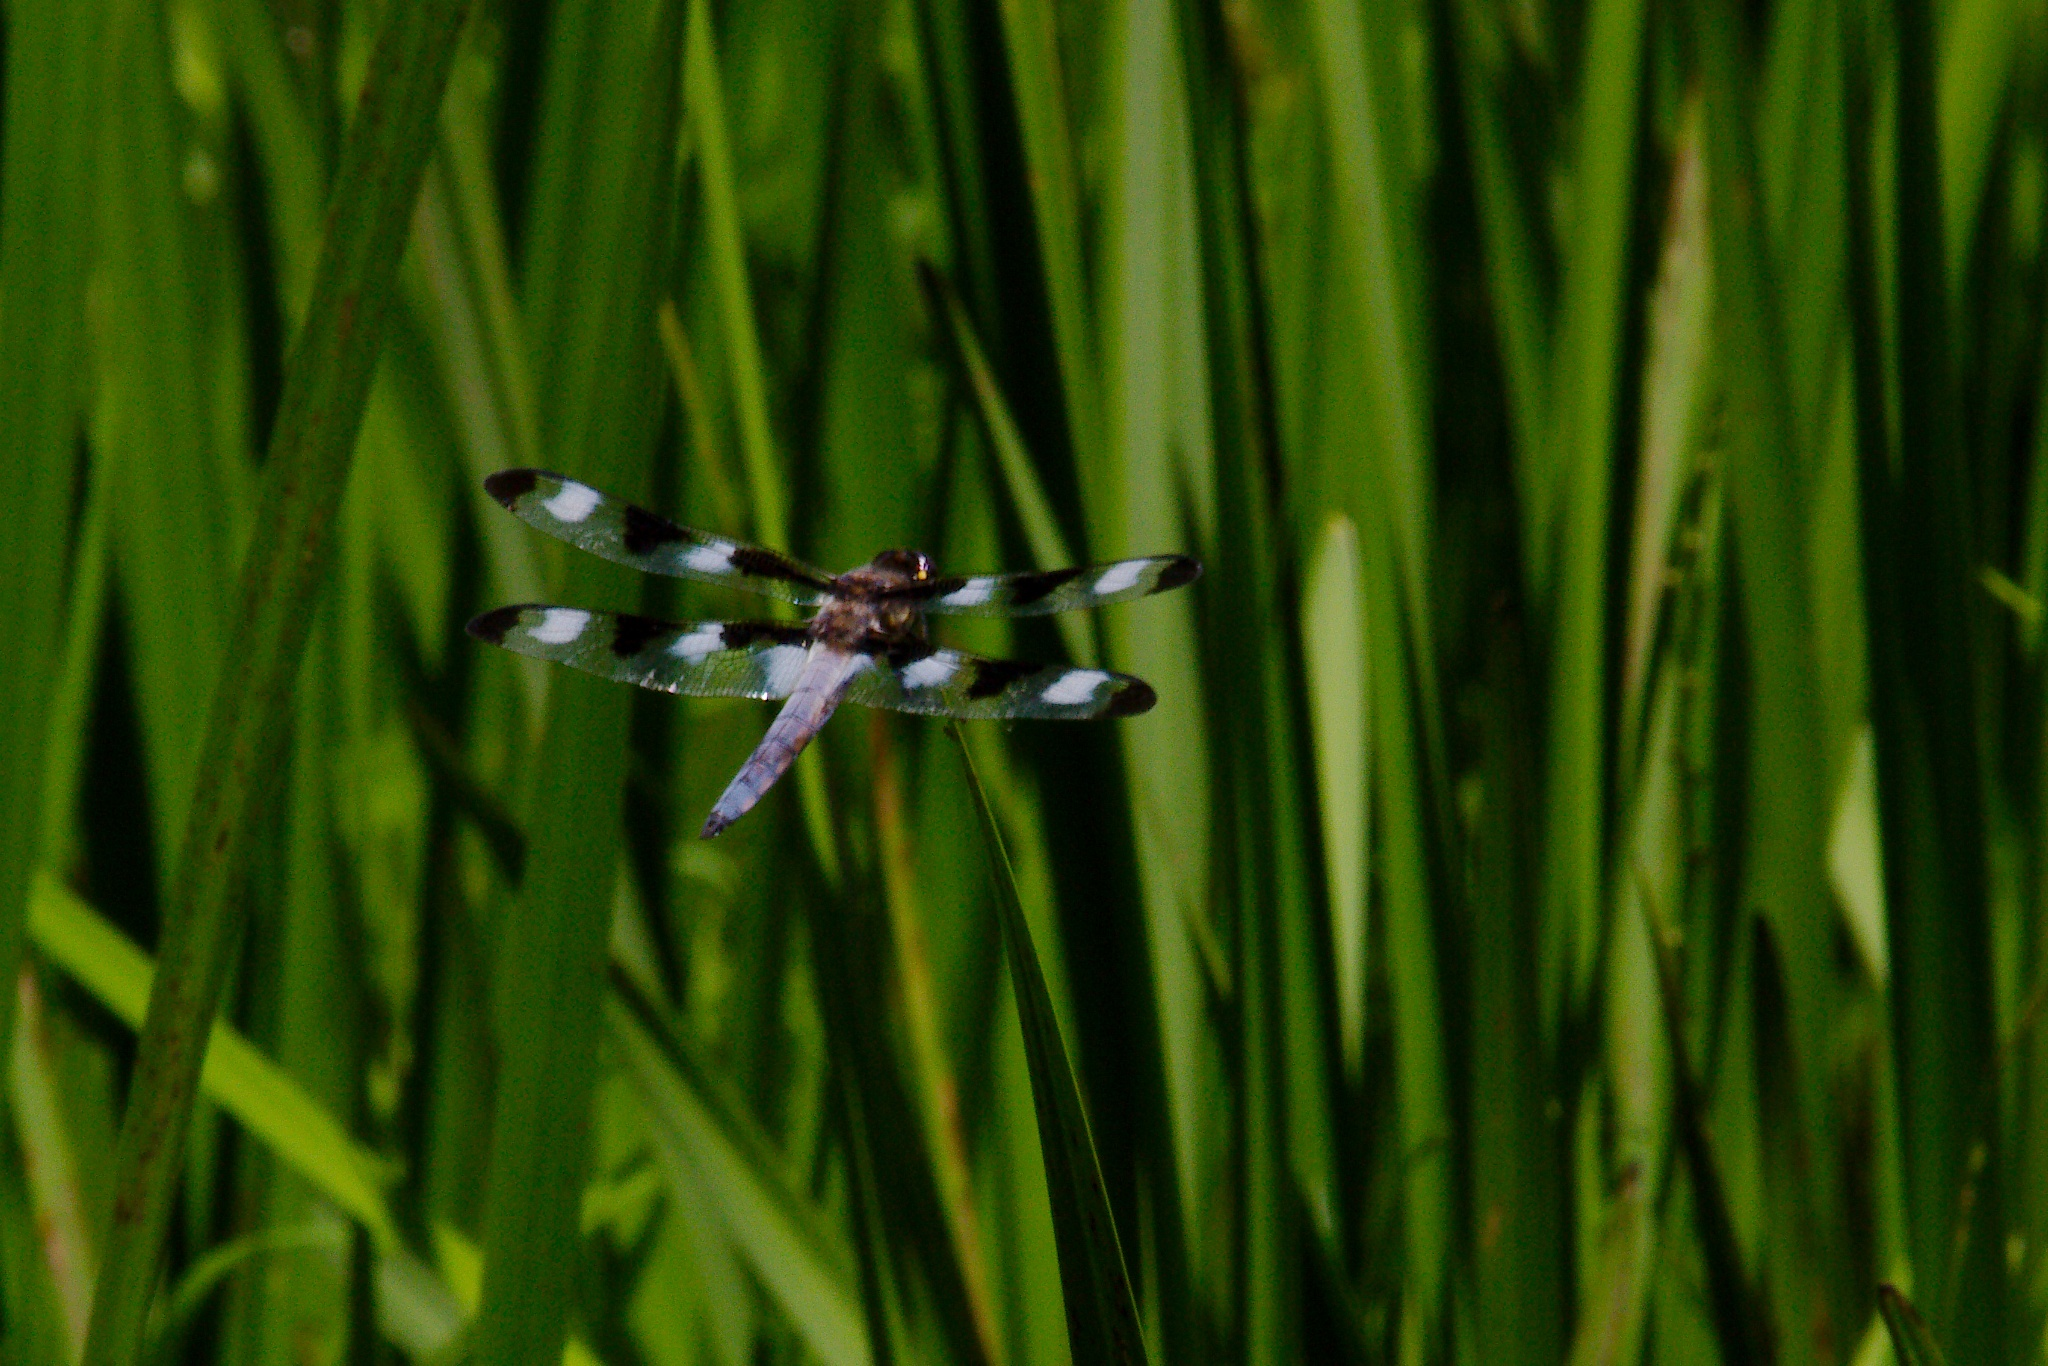 Dragonfly in the Marsh by Presnell Photography